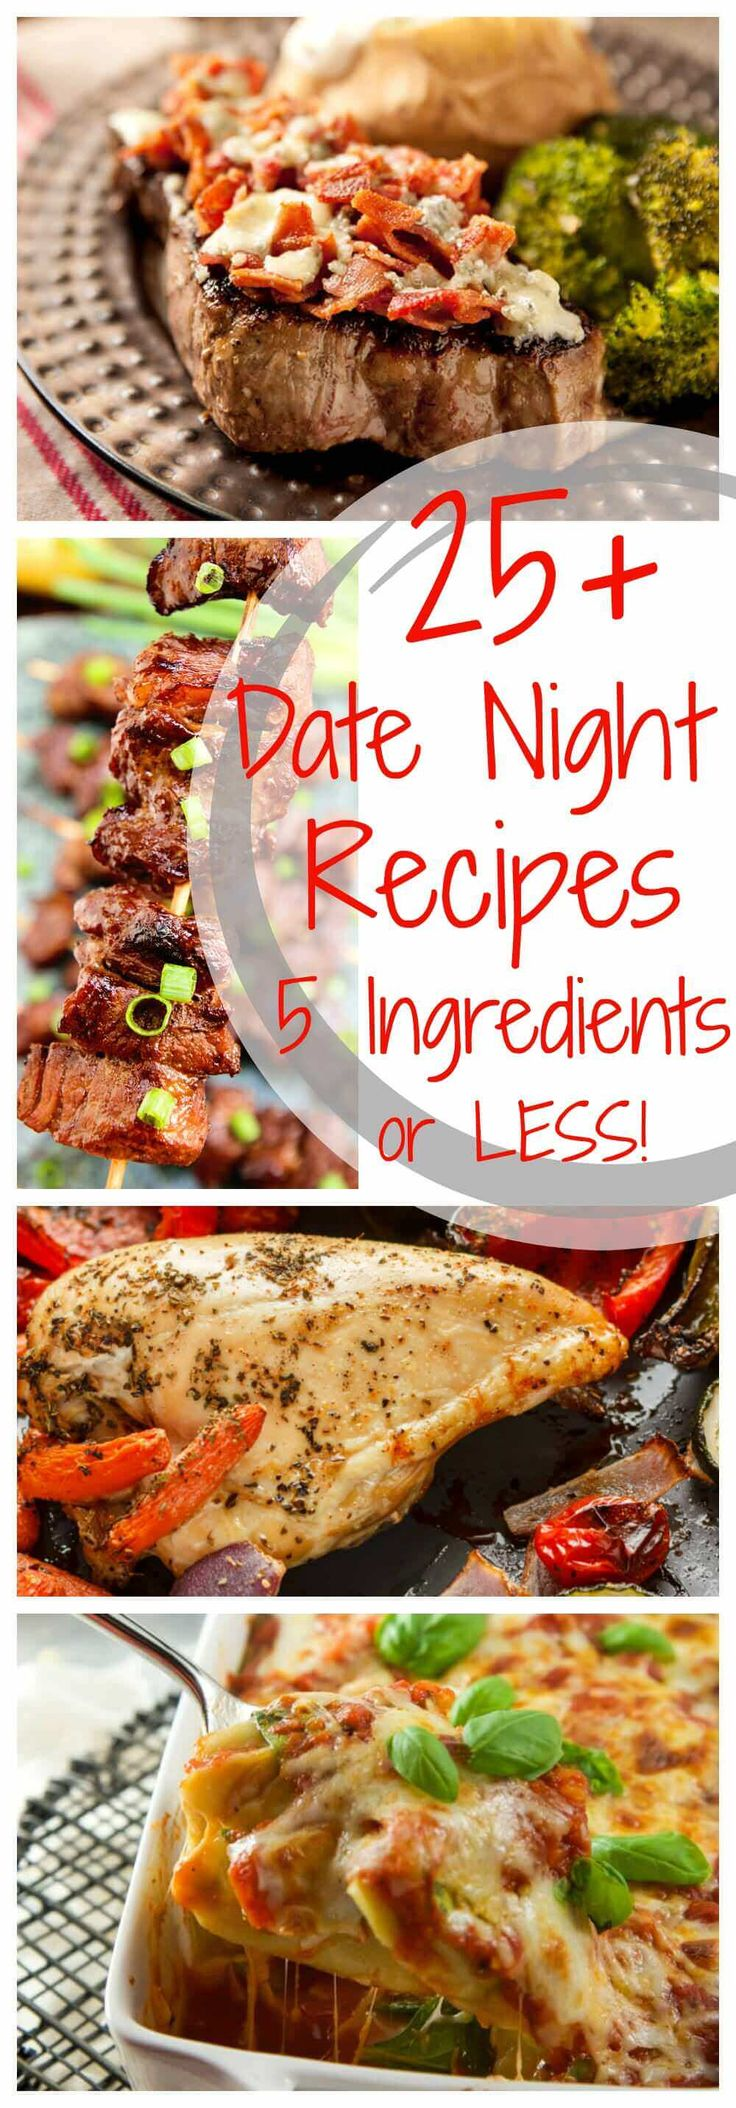 25+ Delicious Date Night Recipes with 5 Ingredients or Less! ~ Perfect for the Date Night at Home! Quick, Easy and Delicious Date Night Dinners Anyone Can Make! ~ http://www.julieseatsandtreats.com